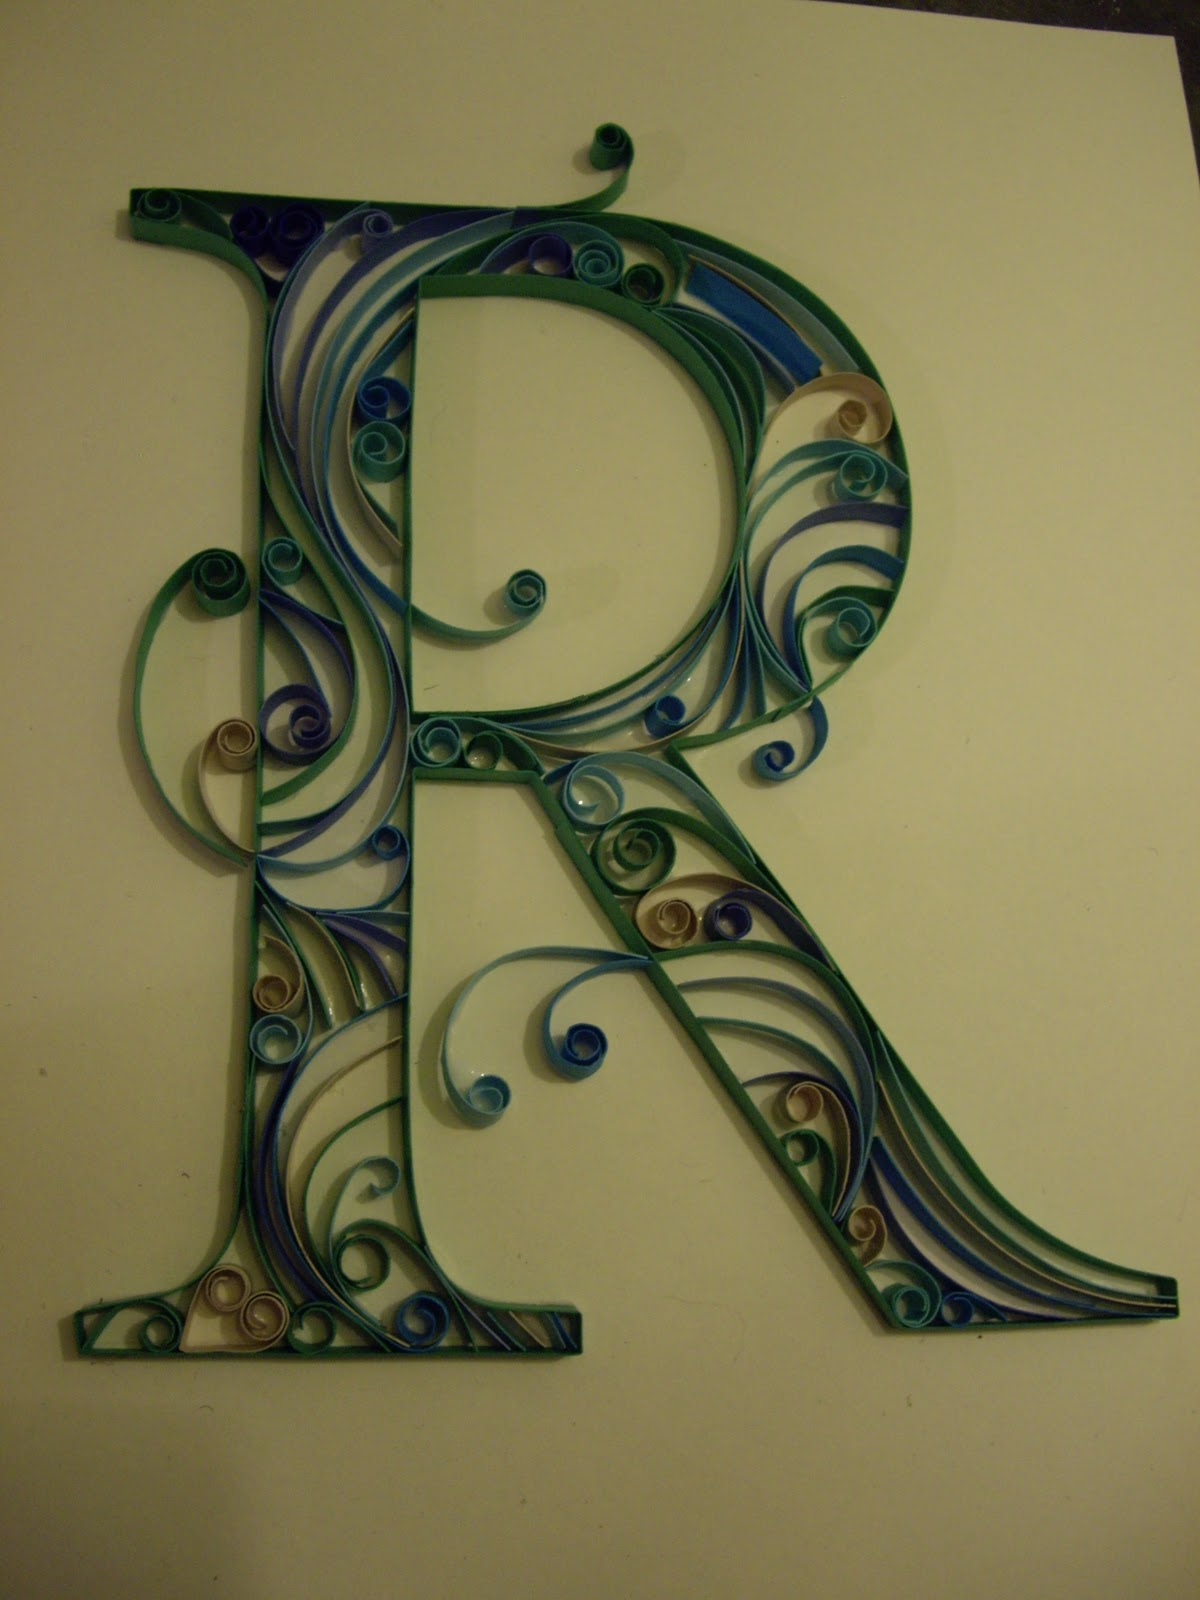 A can of crafty curiosities quilled monograms the letters c and r simple times new roman and i think that helped to simplify the letter giving it a bit more contrast between the swirly lines and the hard lines altavistaventures Choice Image